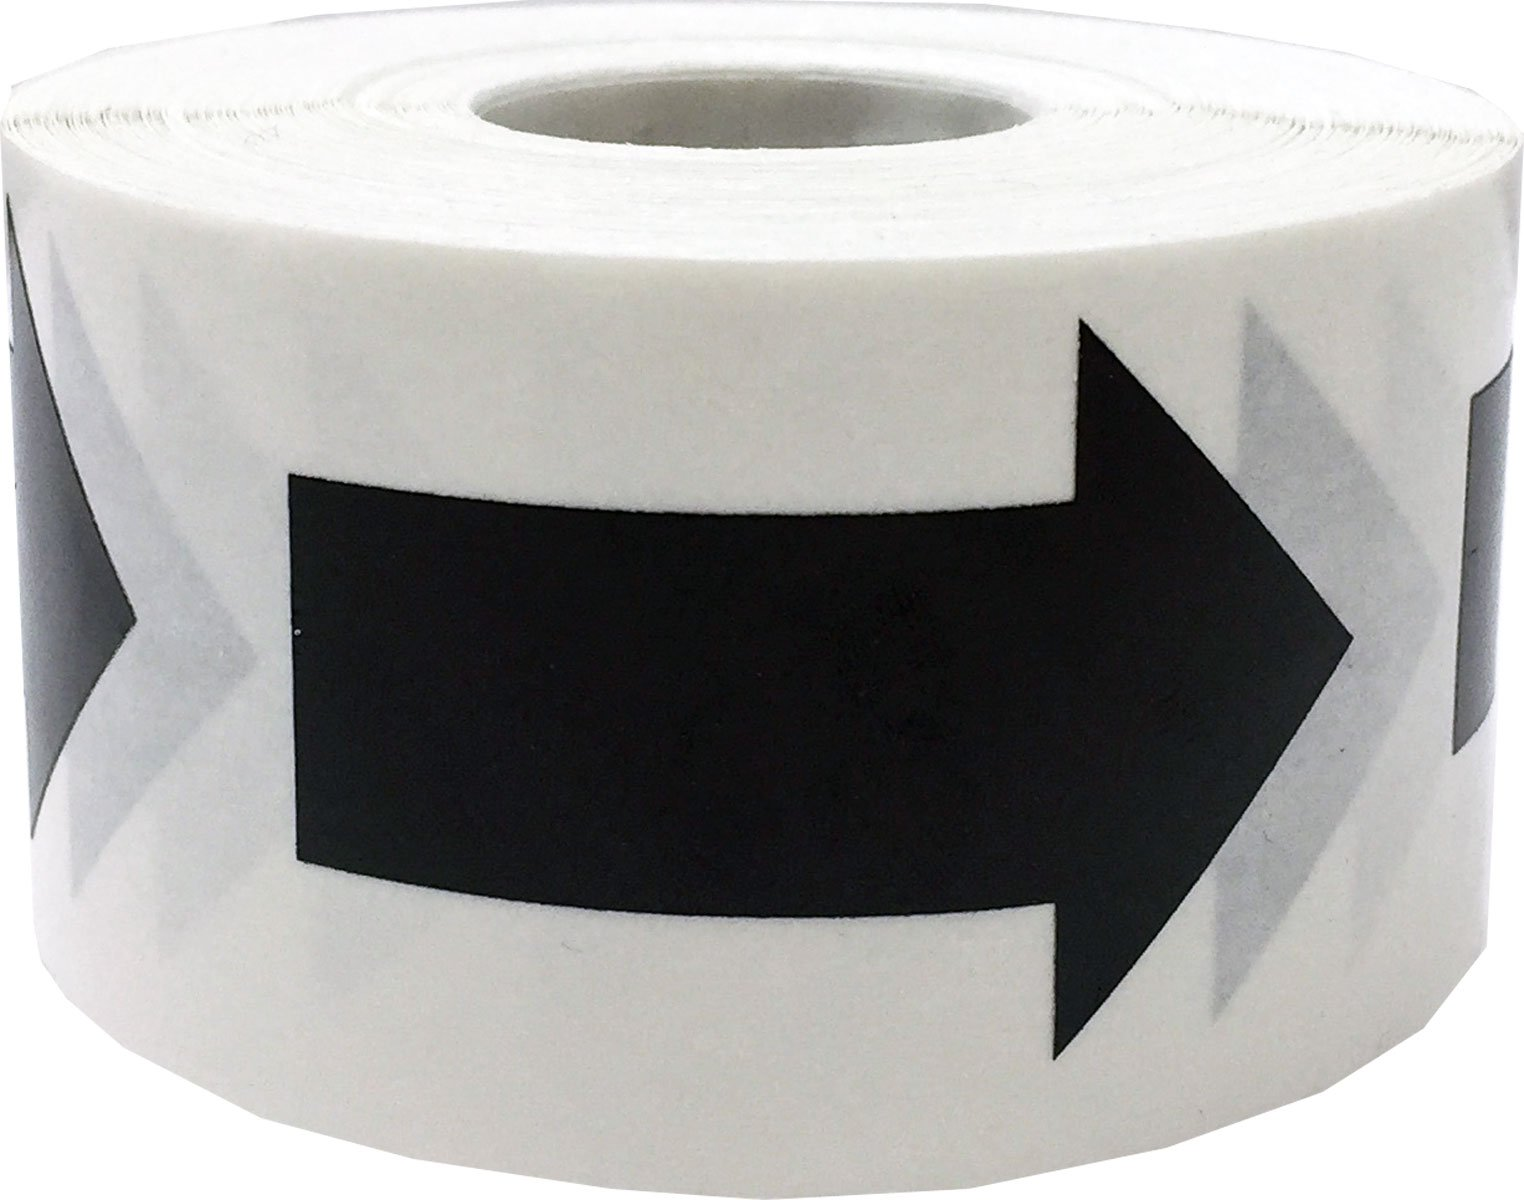 Black Arrow Stickers, 2 x 1 Inches in Size, 500 Labels on a Roll